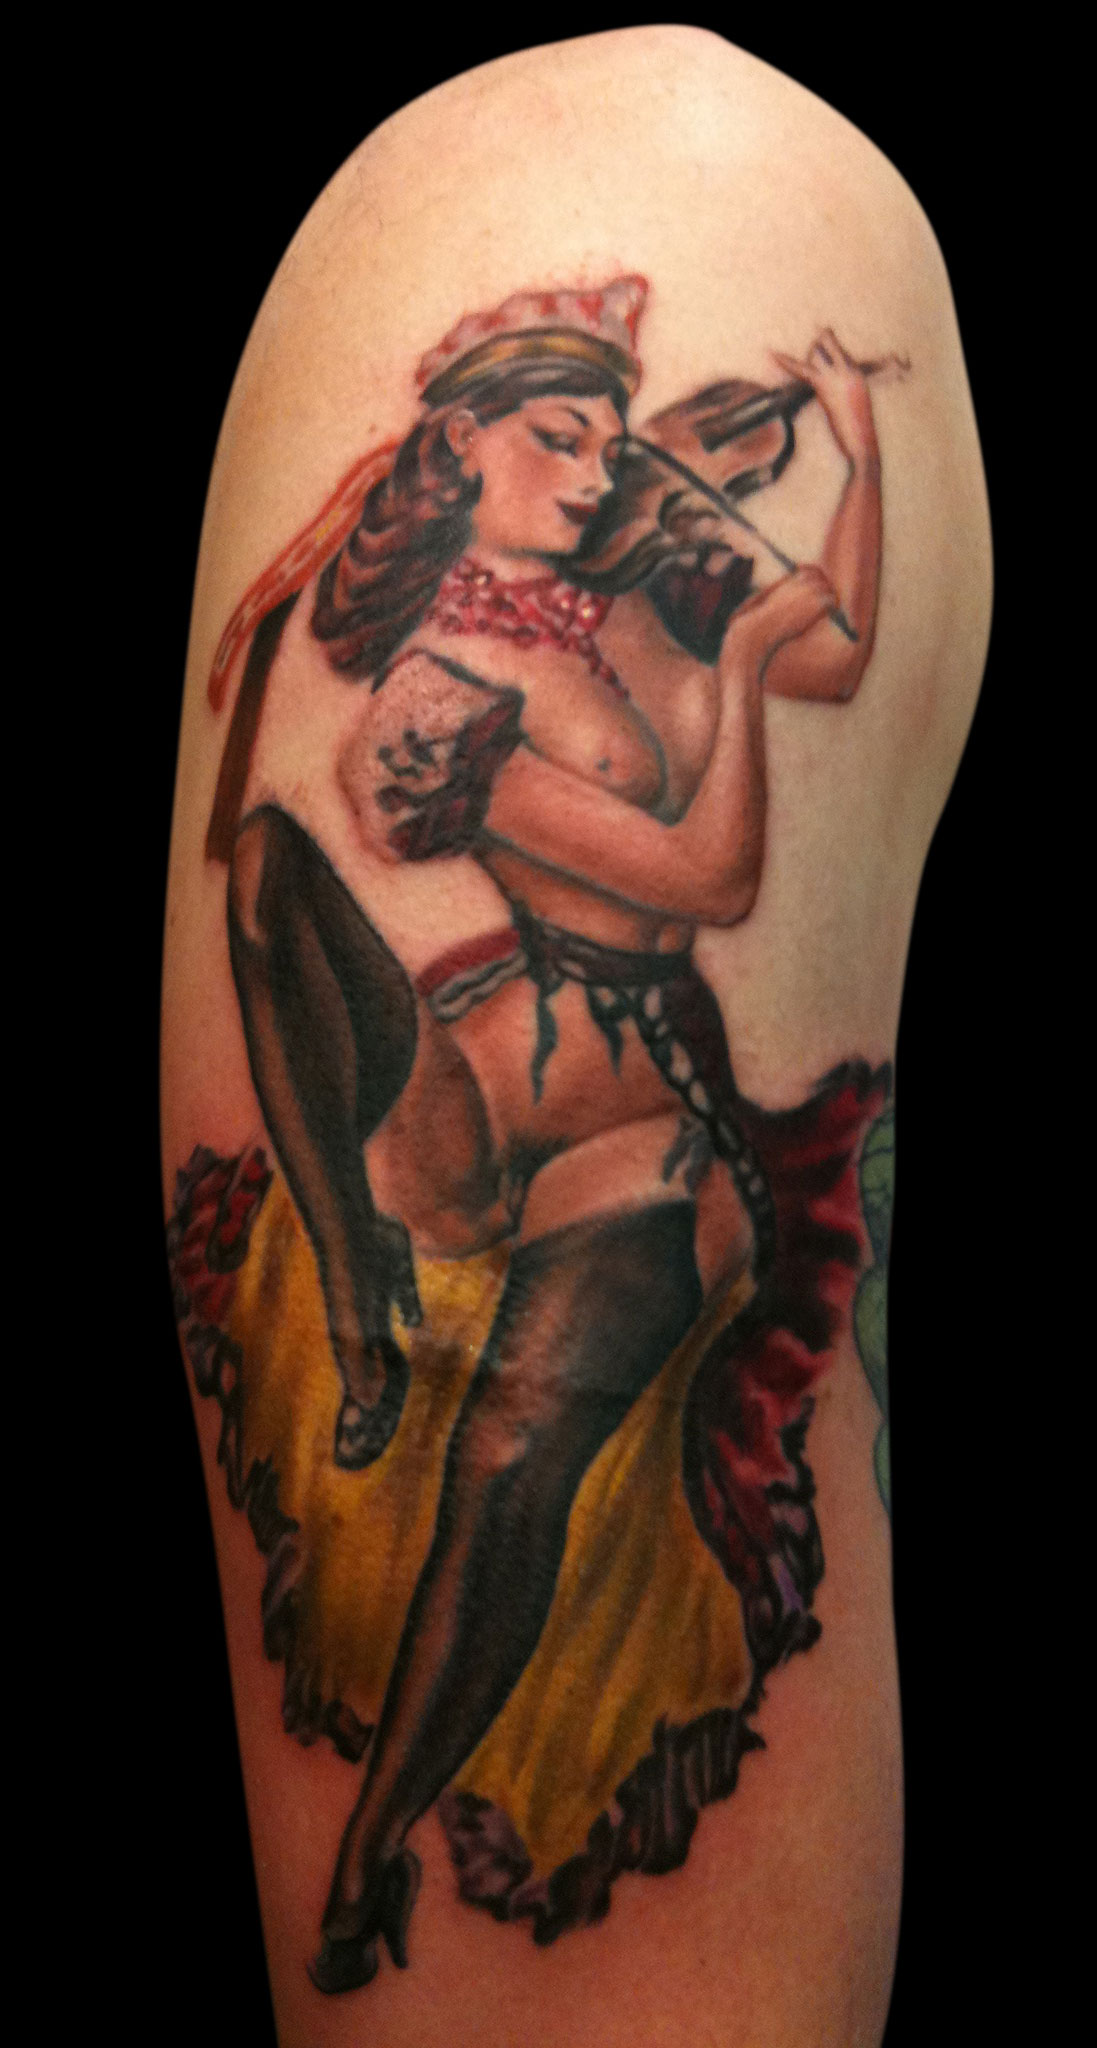 Color Violin Pin Up Tattoo, from 1920's erotica painting